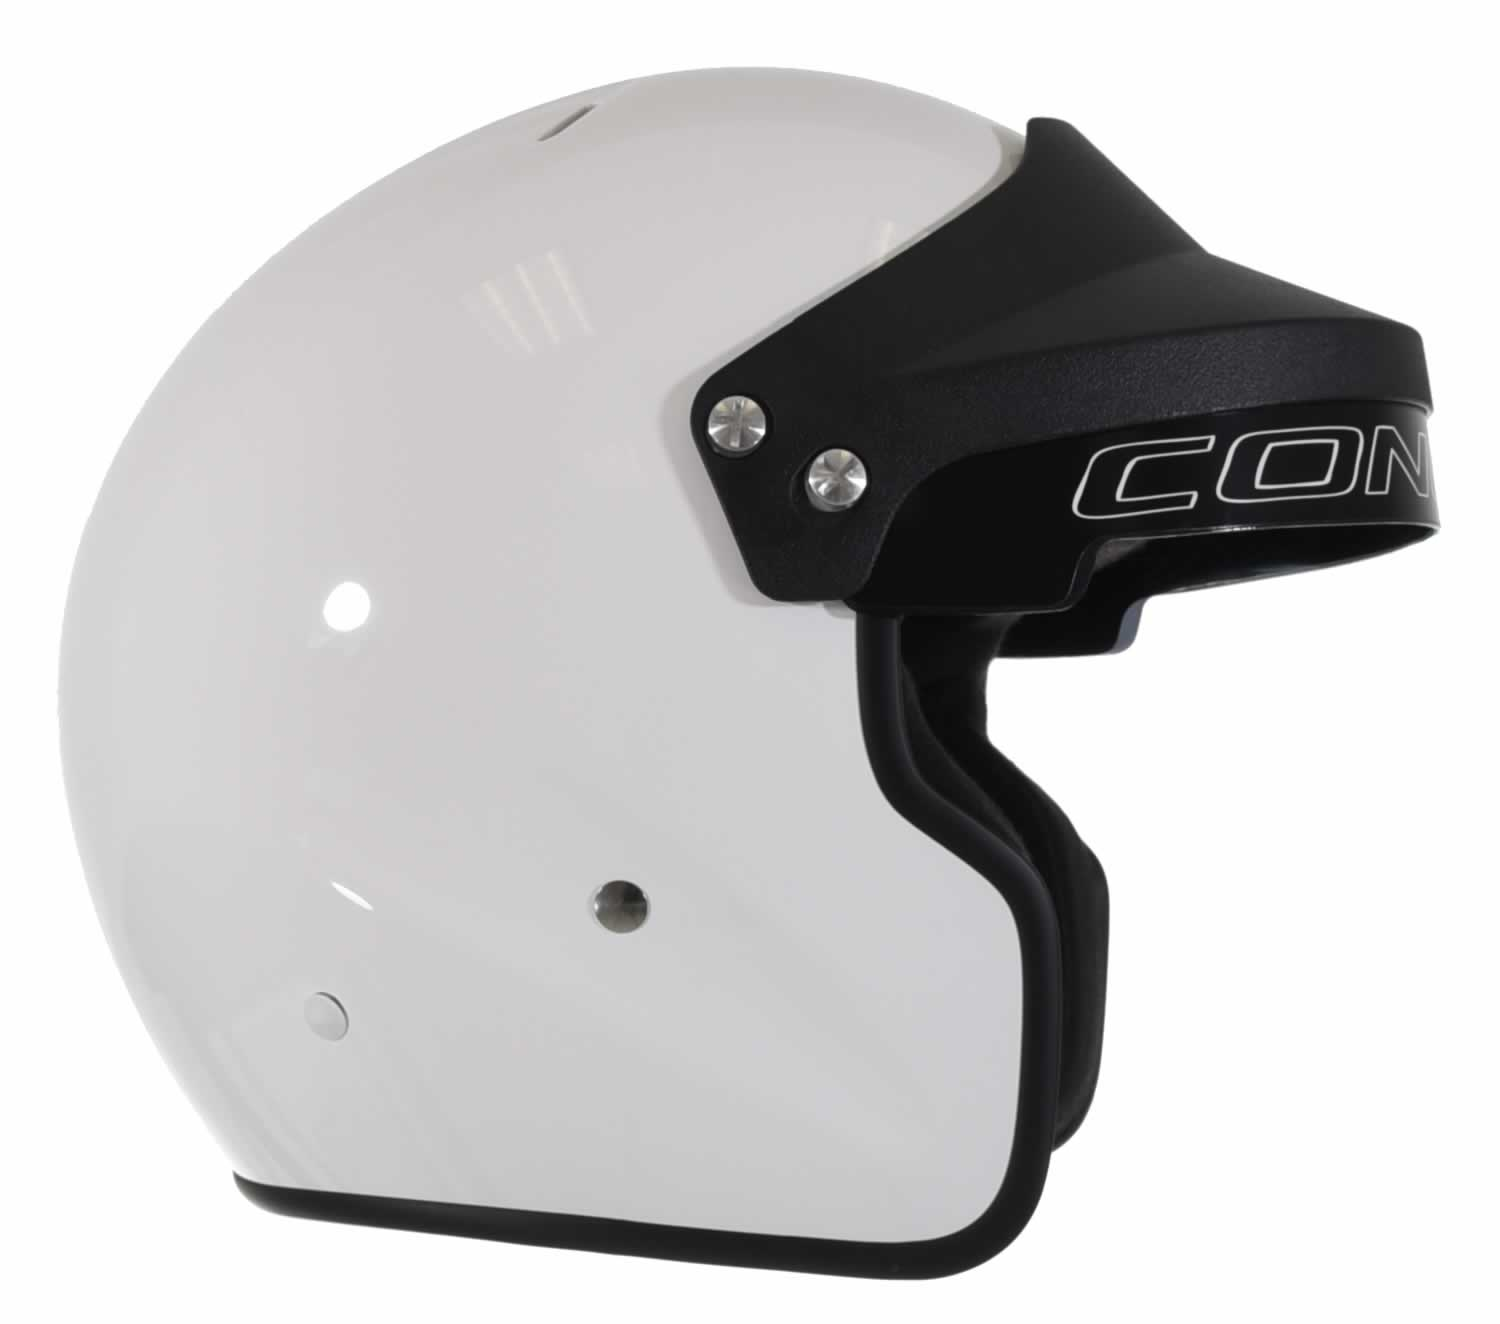 Conquer-Snell-SA2015-Approved-Open-Face-Racing-Helmet thumbnail 9